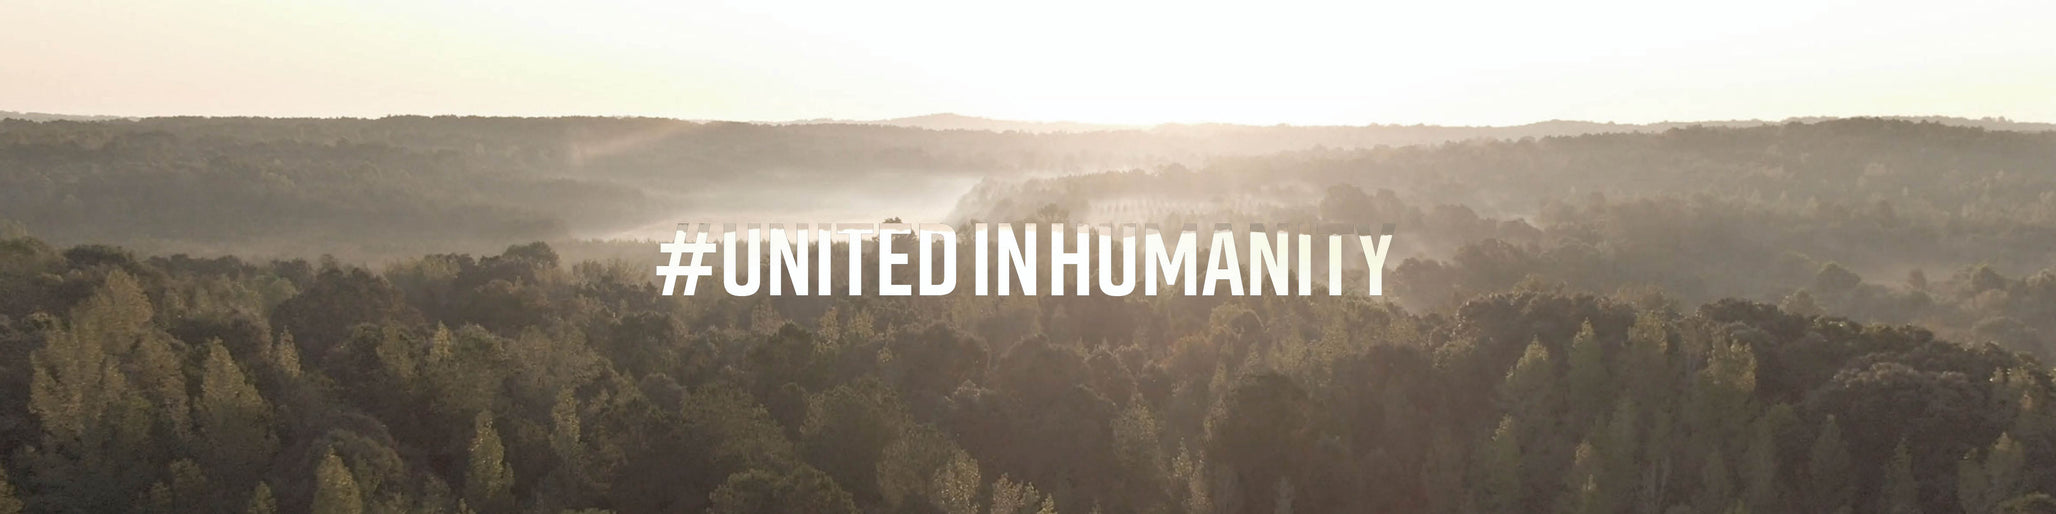 Ryzon United In Humanity // World Bicycle Relief Header Image